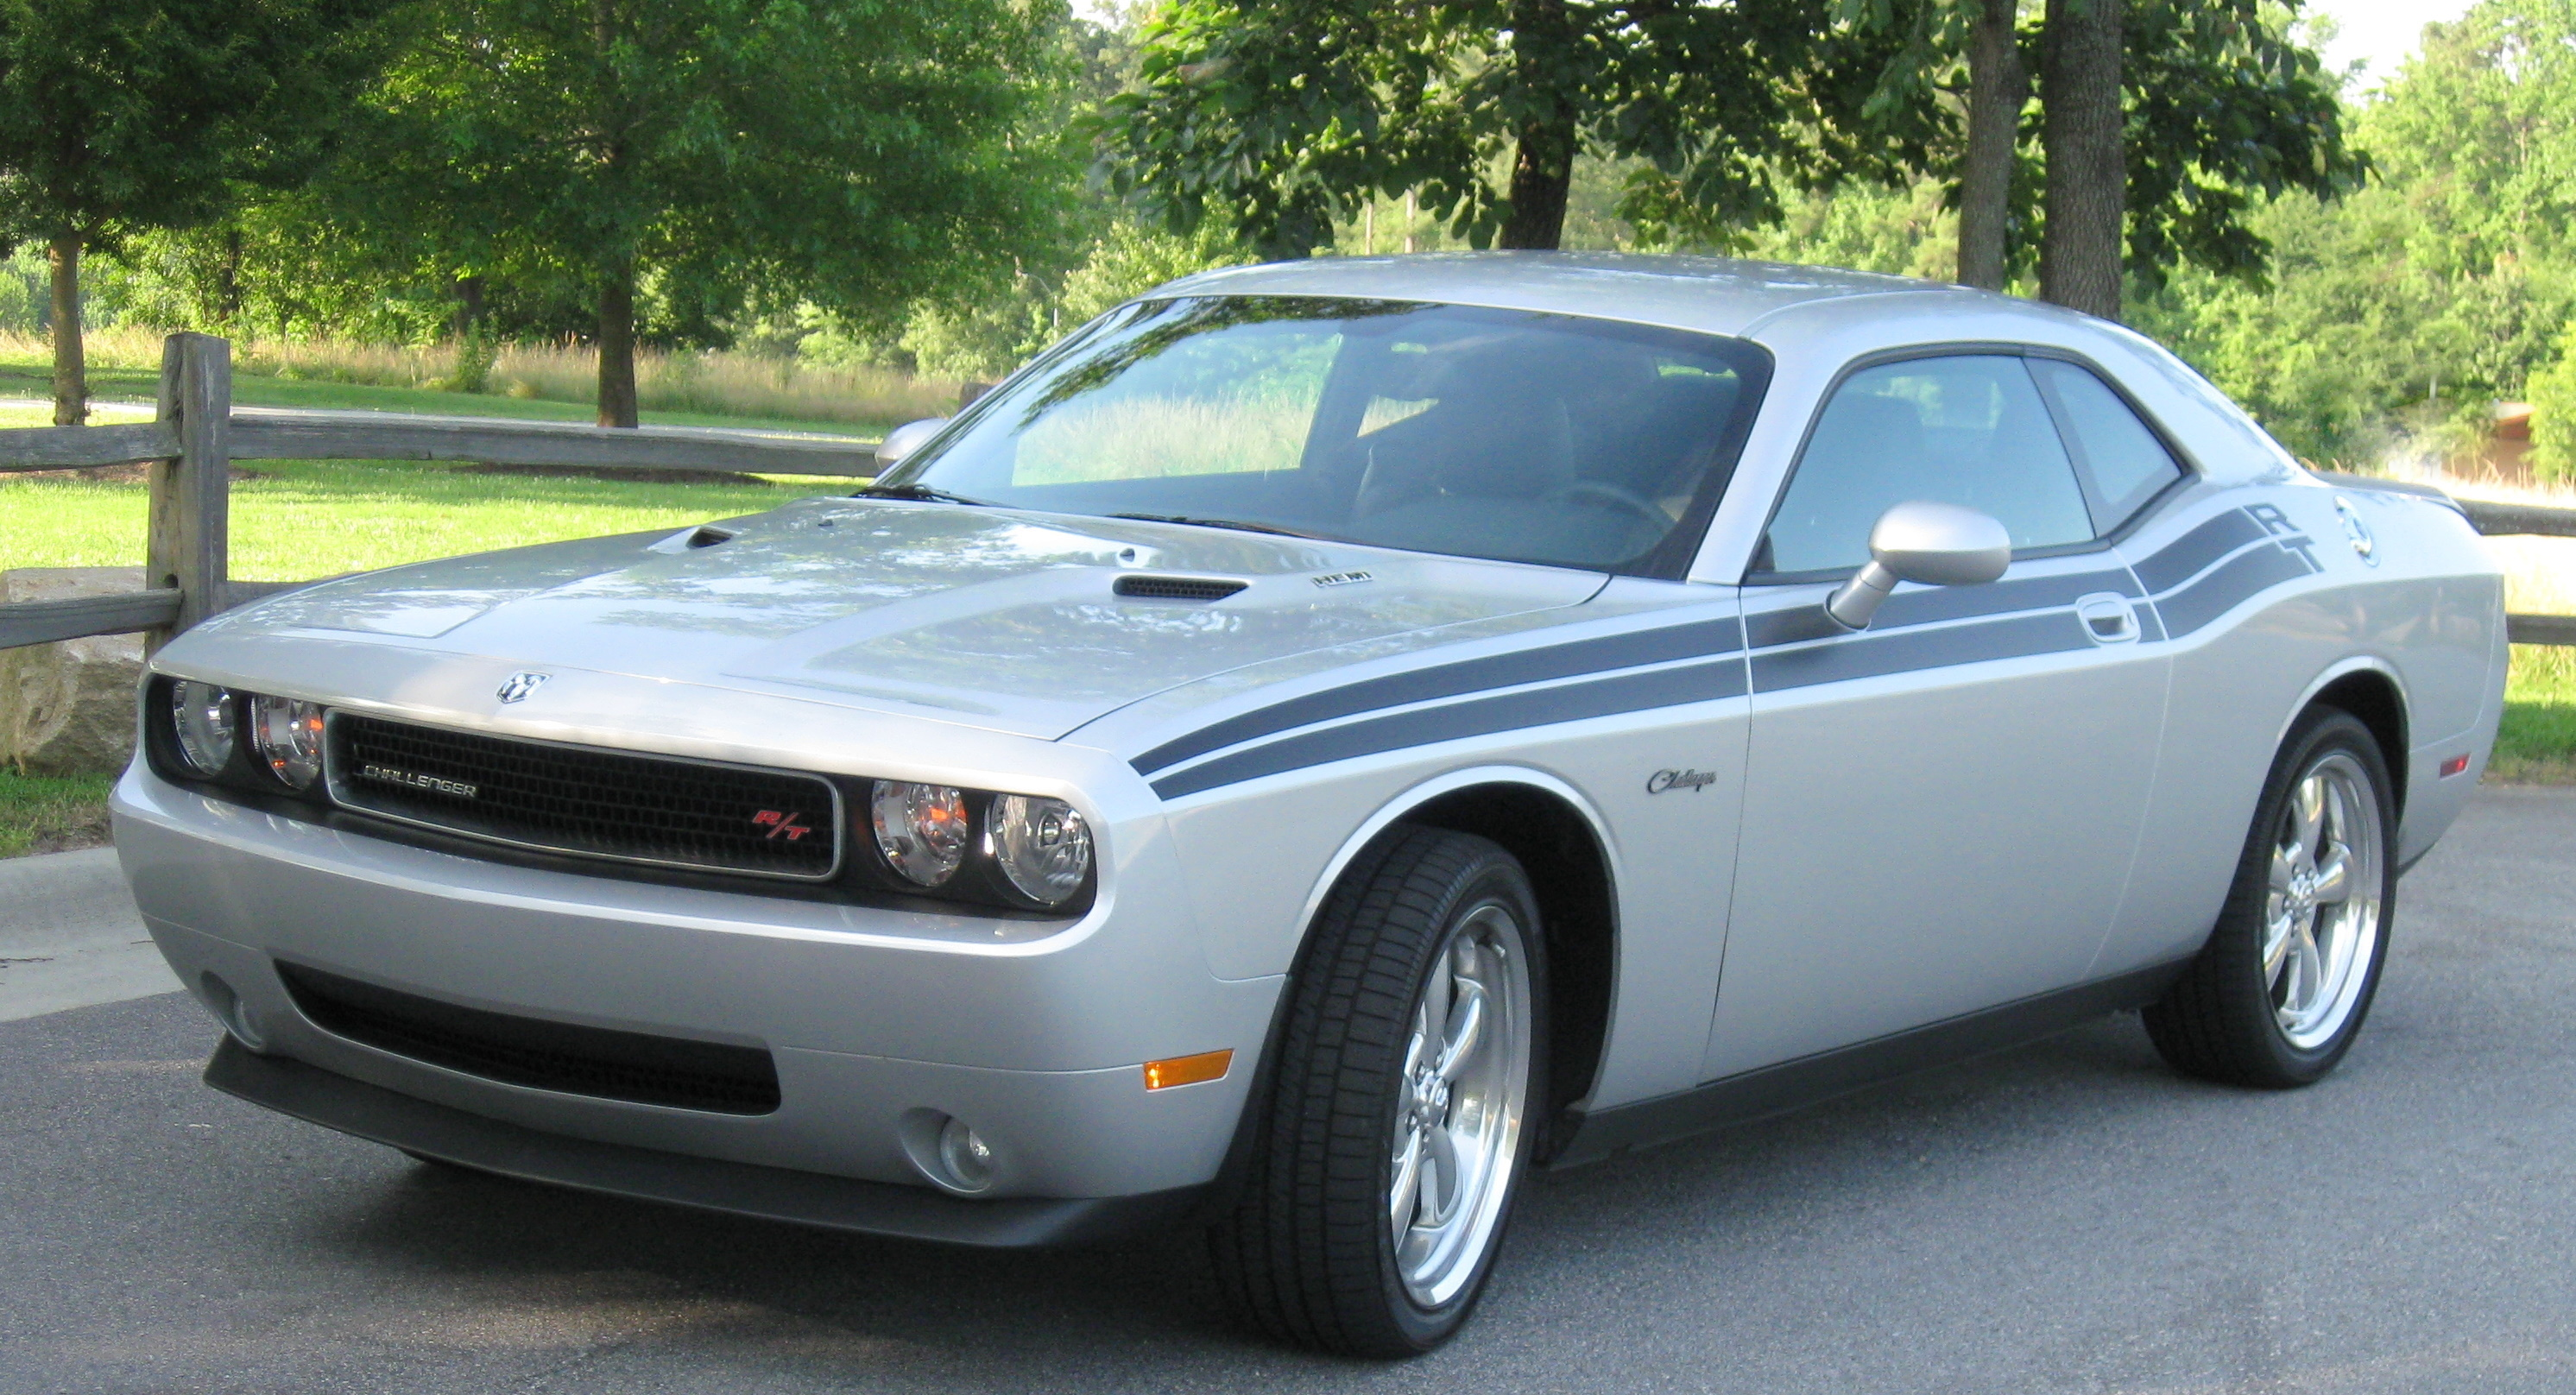 cars t bc certified abbotsford cargurus used sale cl in for challenger dodge r